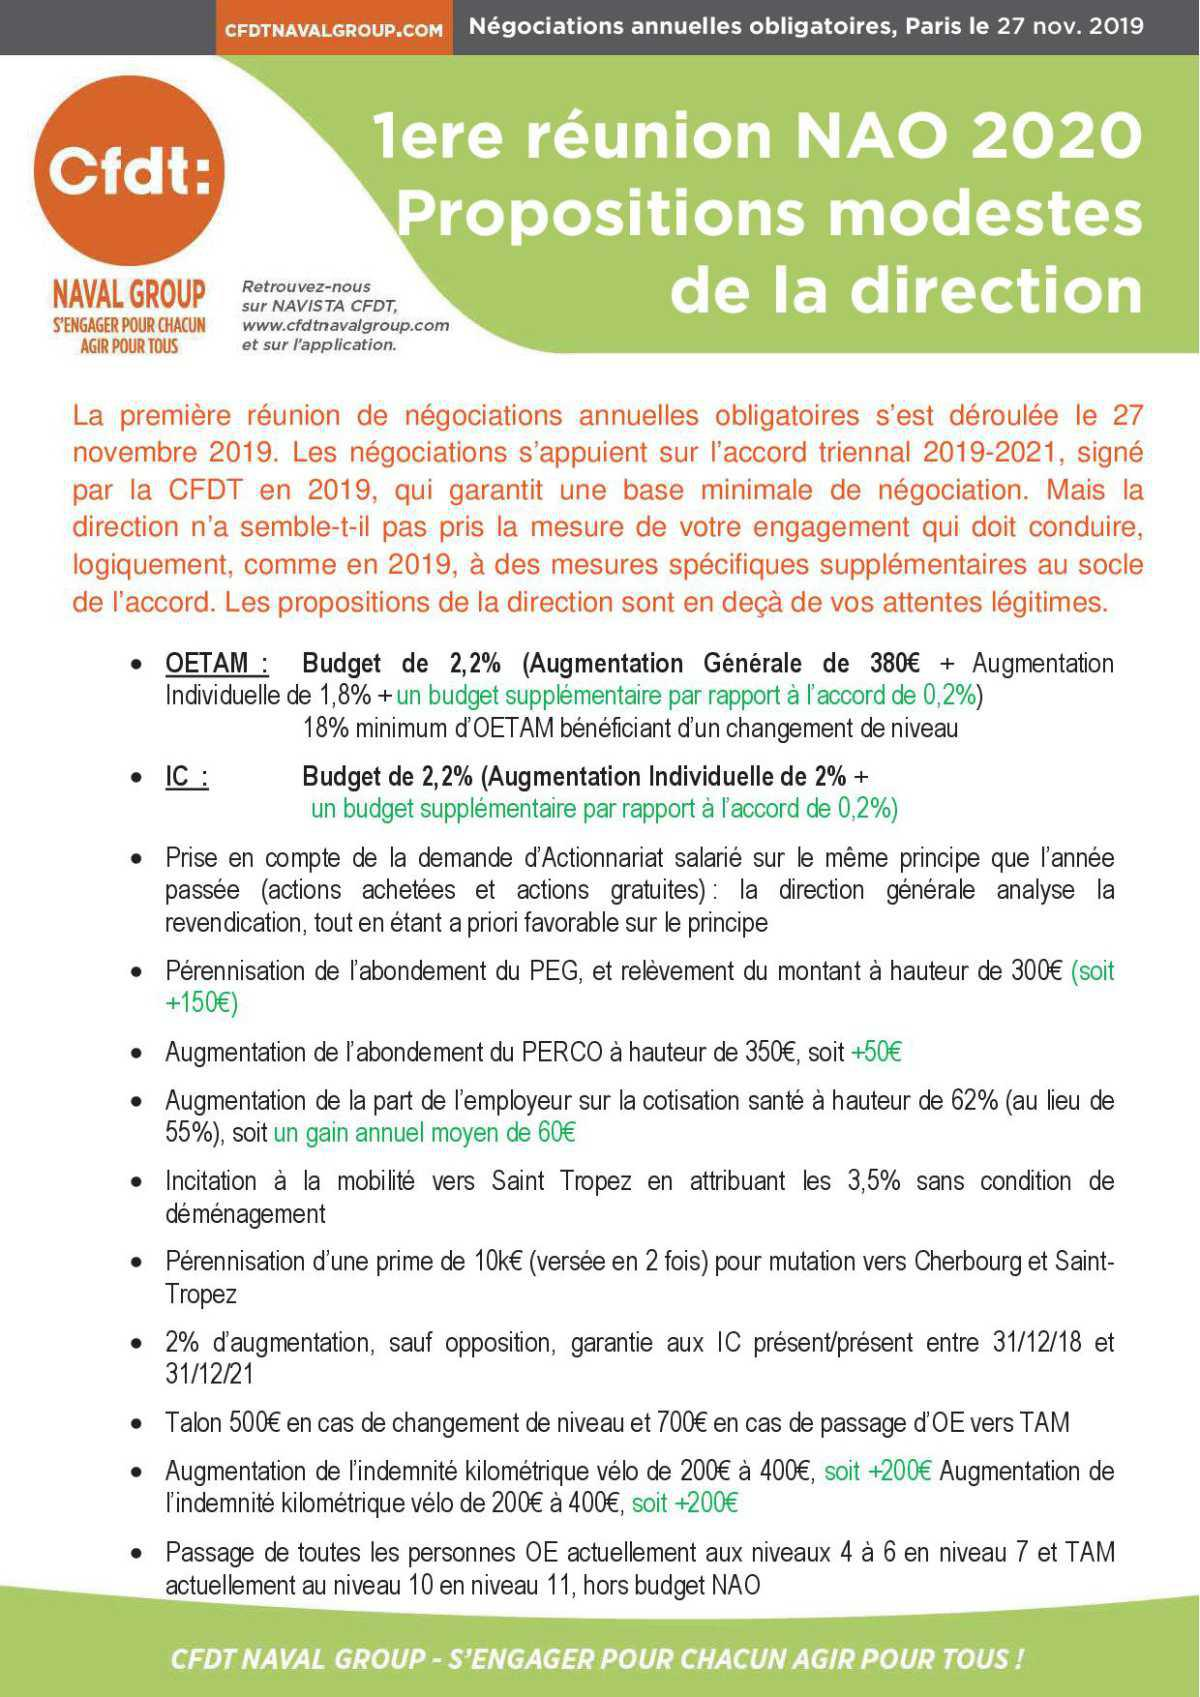 1ere réunion NAO 2020 : Propositions modestes de la Direction